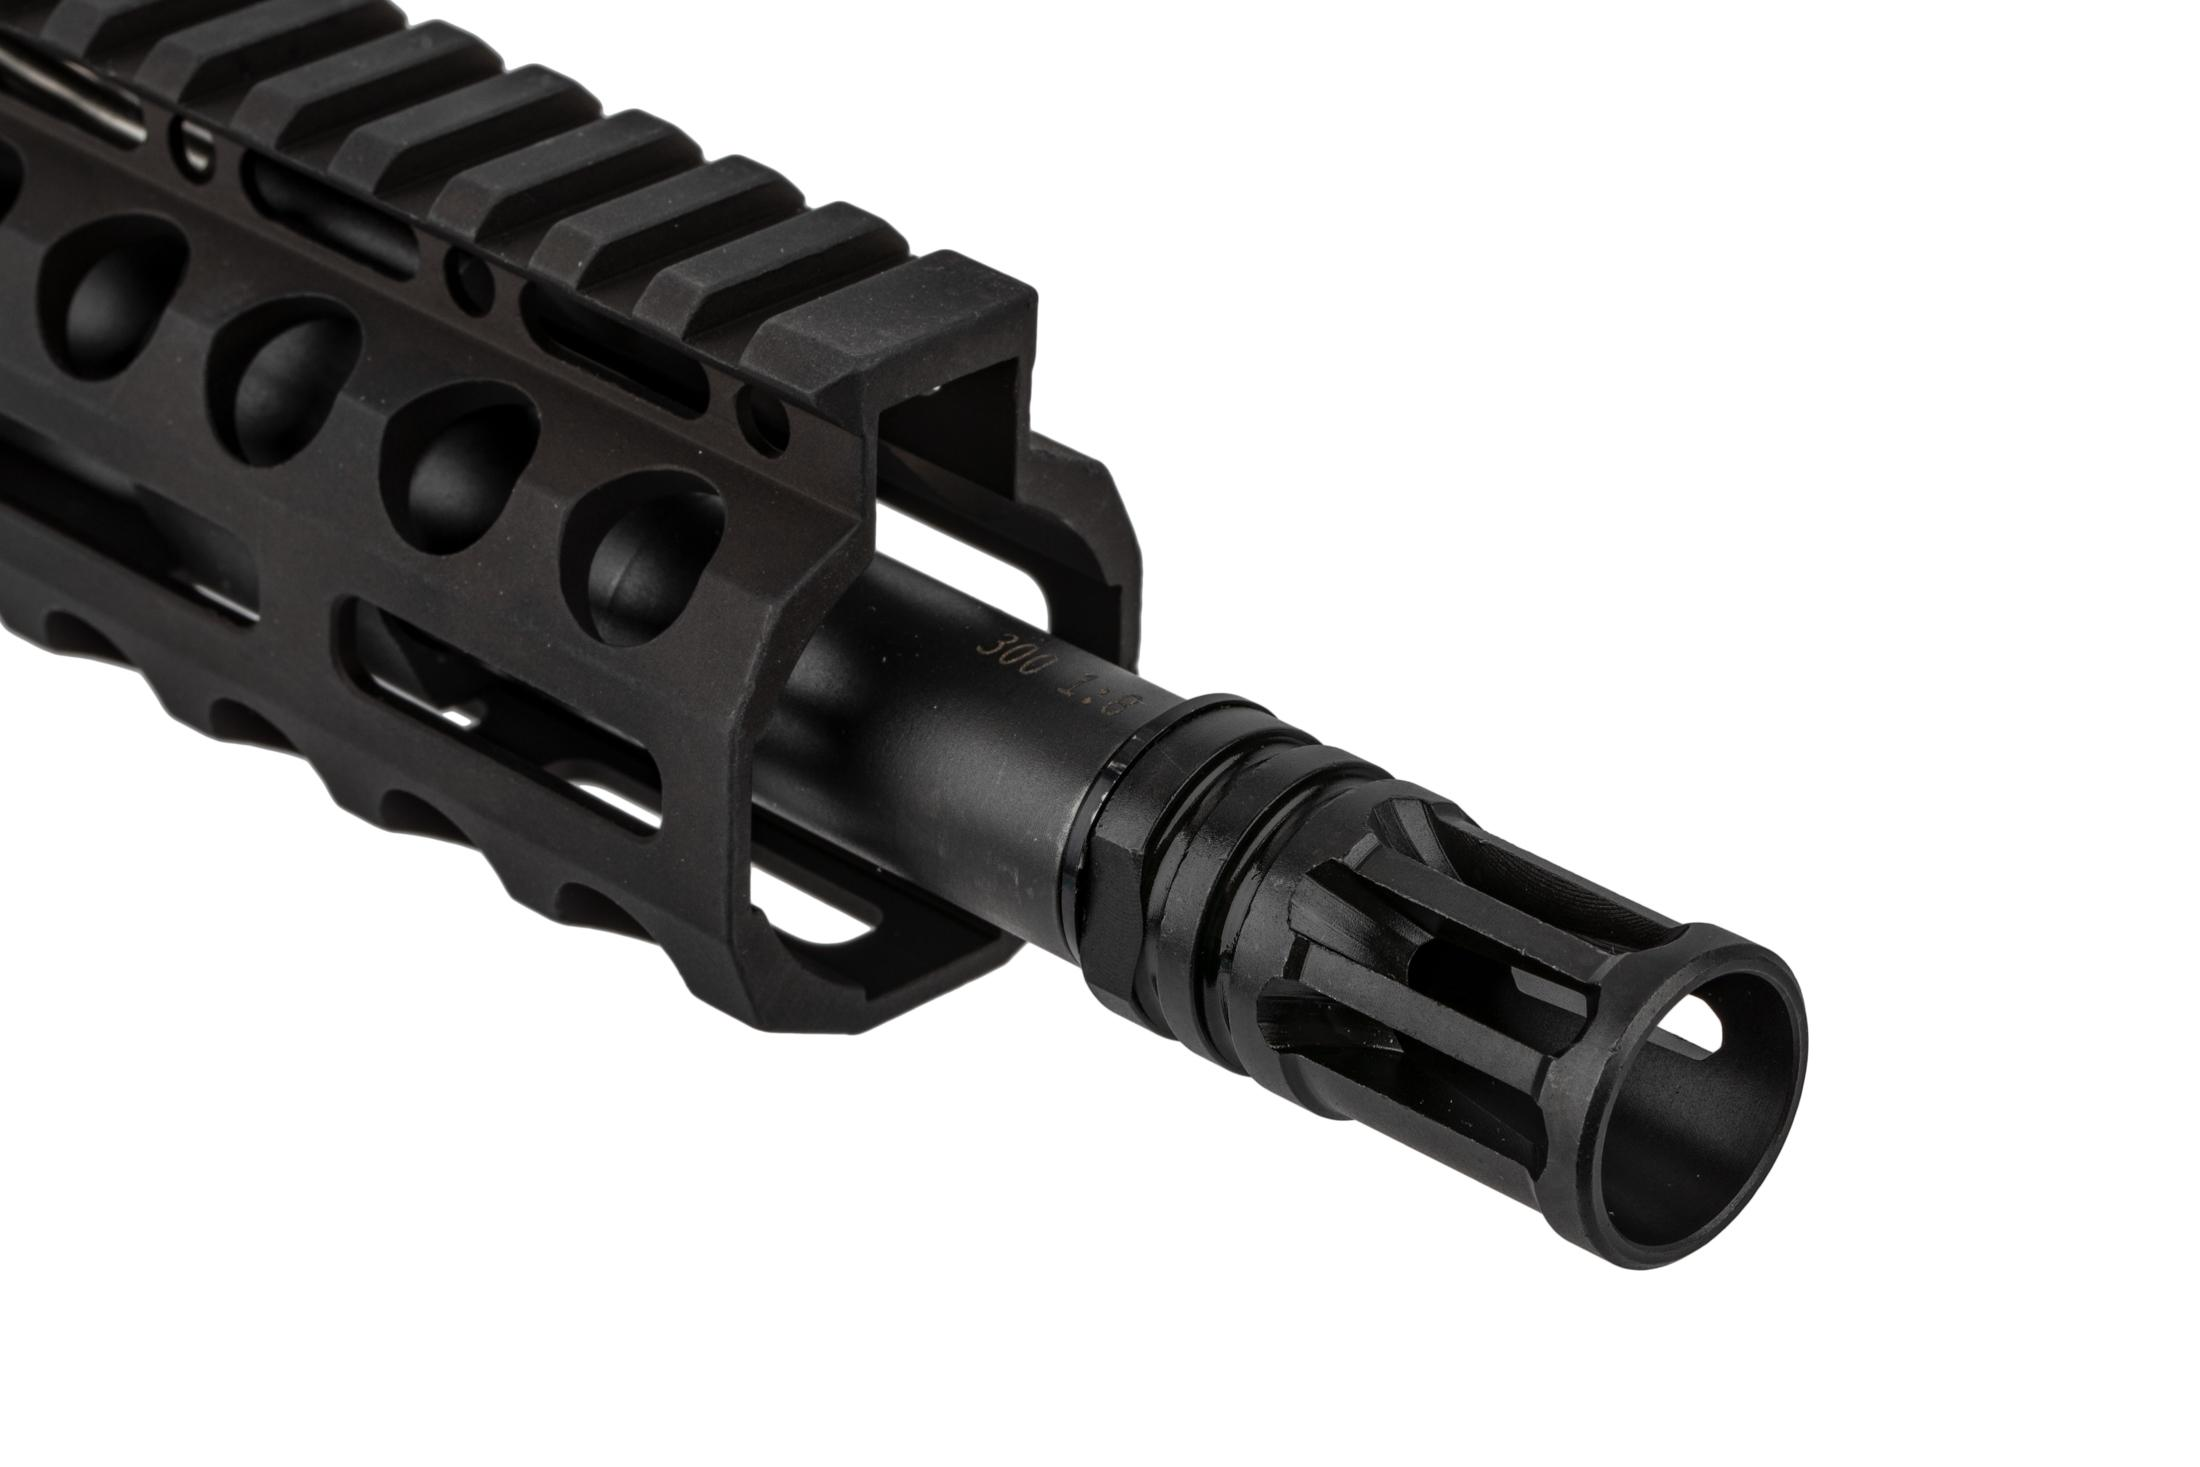 The Radical Firearms 300 Blackout AR15 Pistol with 8.5 inch barrel features an A2 flash hider